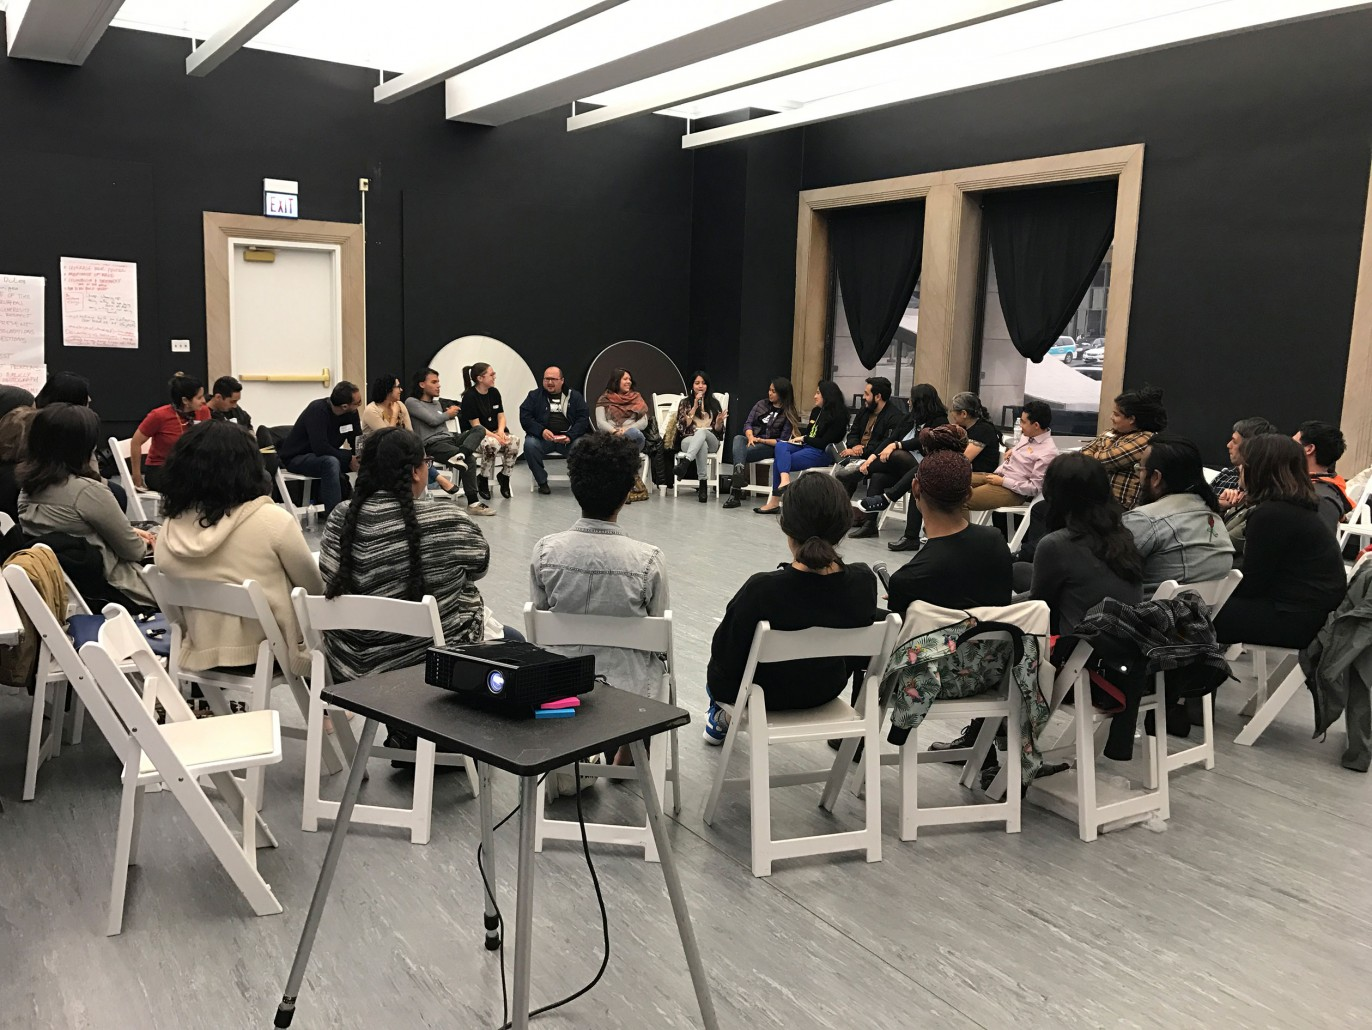 LXAR in session at the Chicago Cultural Center. Image credit: Anthony Romero and J. Soto.